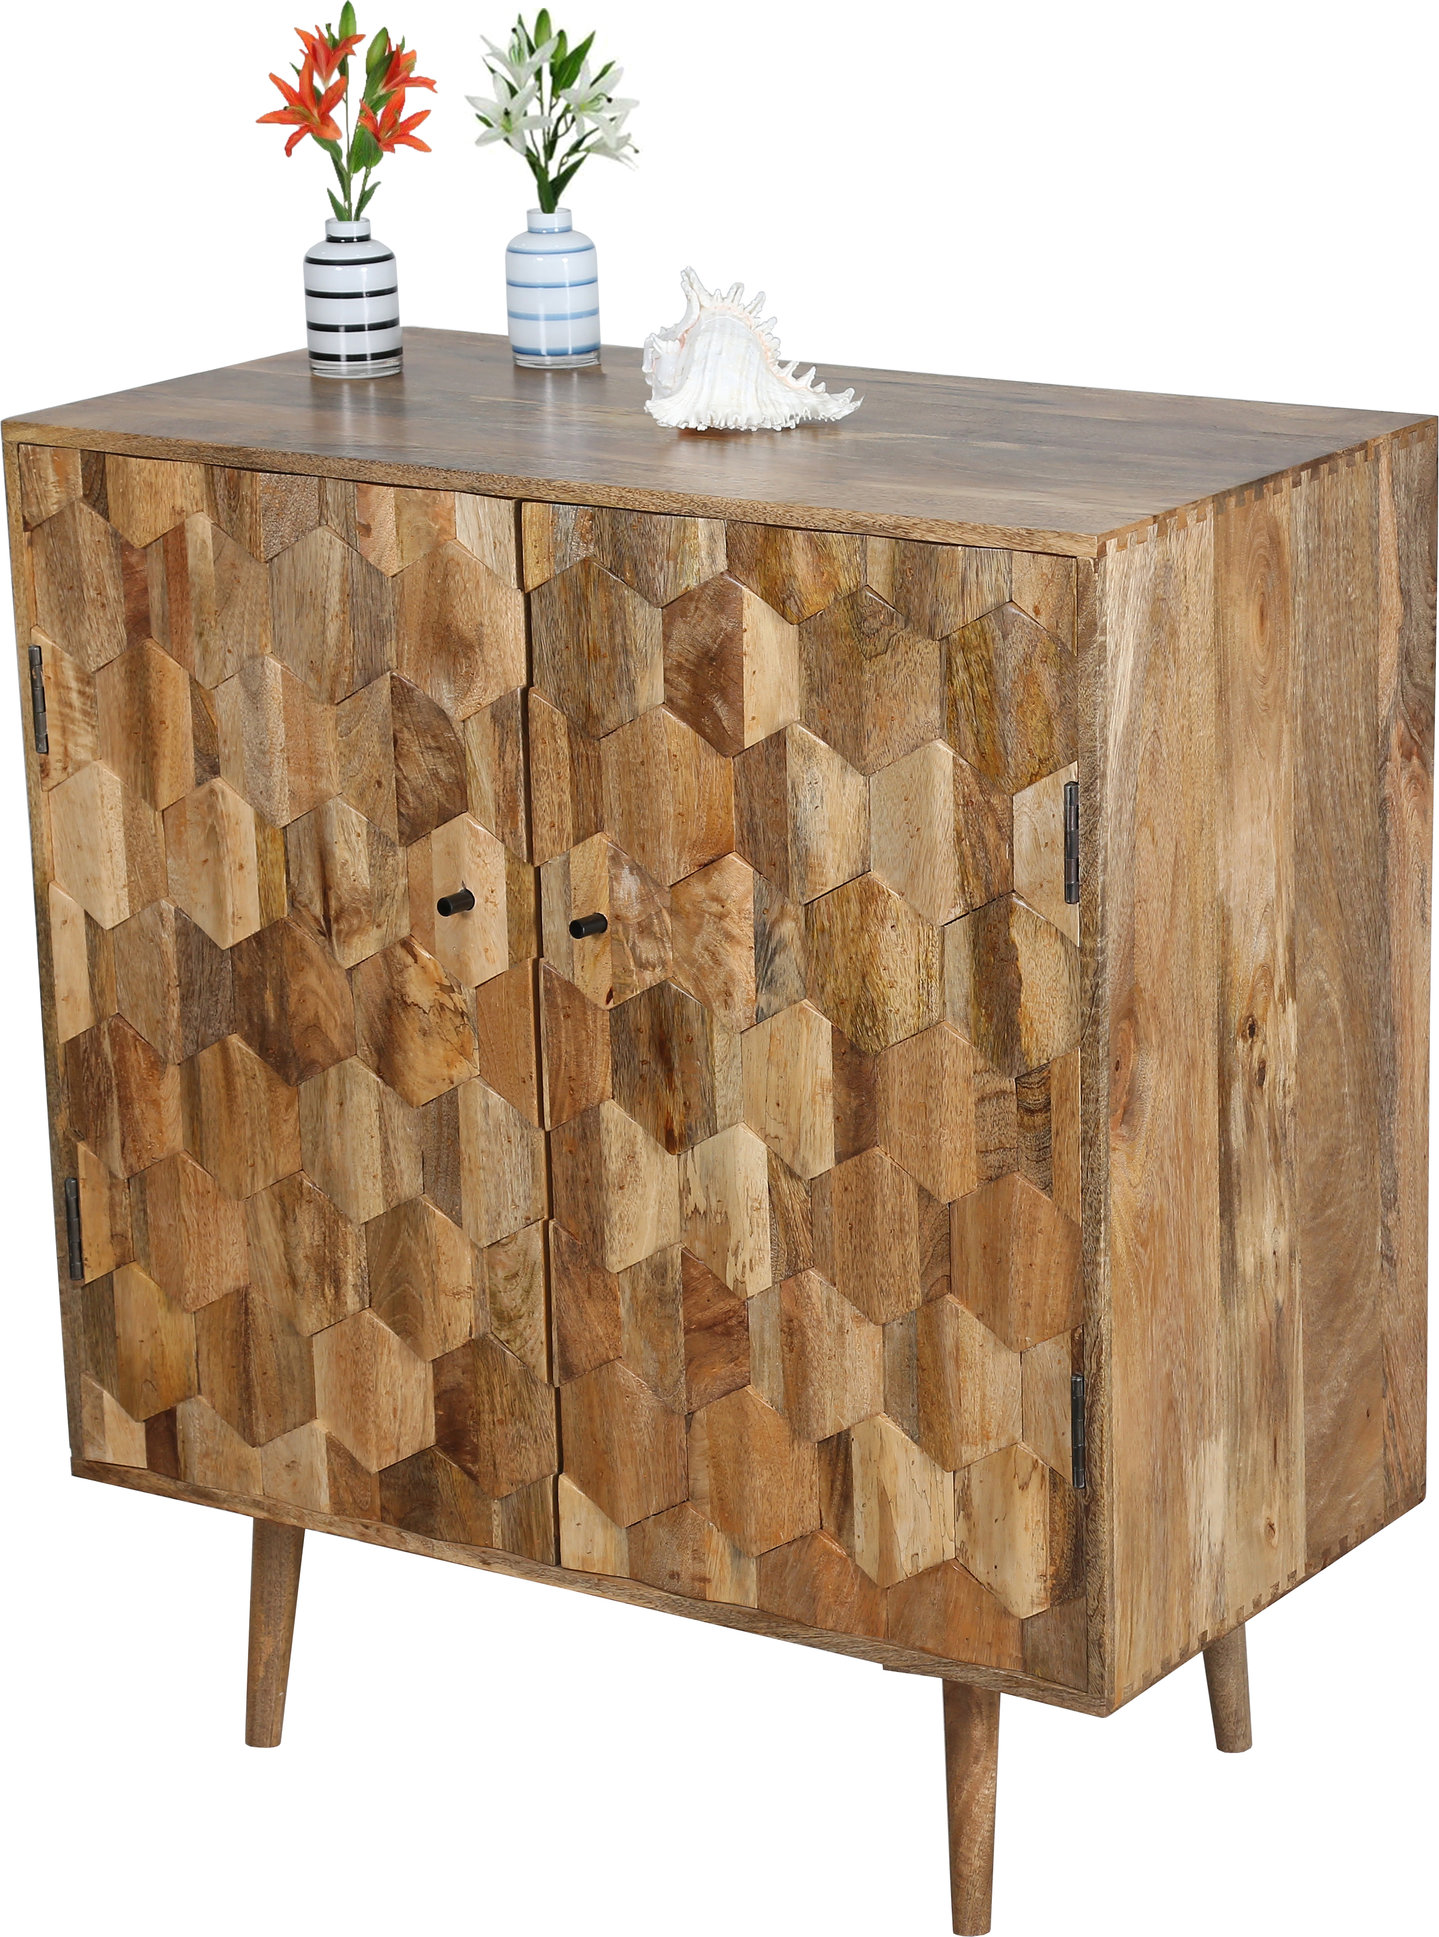 2 door hexagonal pattern cabinet in light mango wood